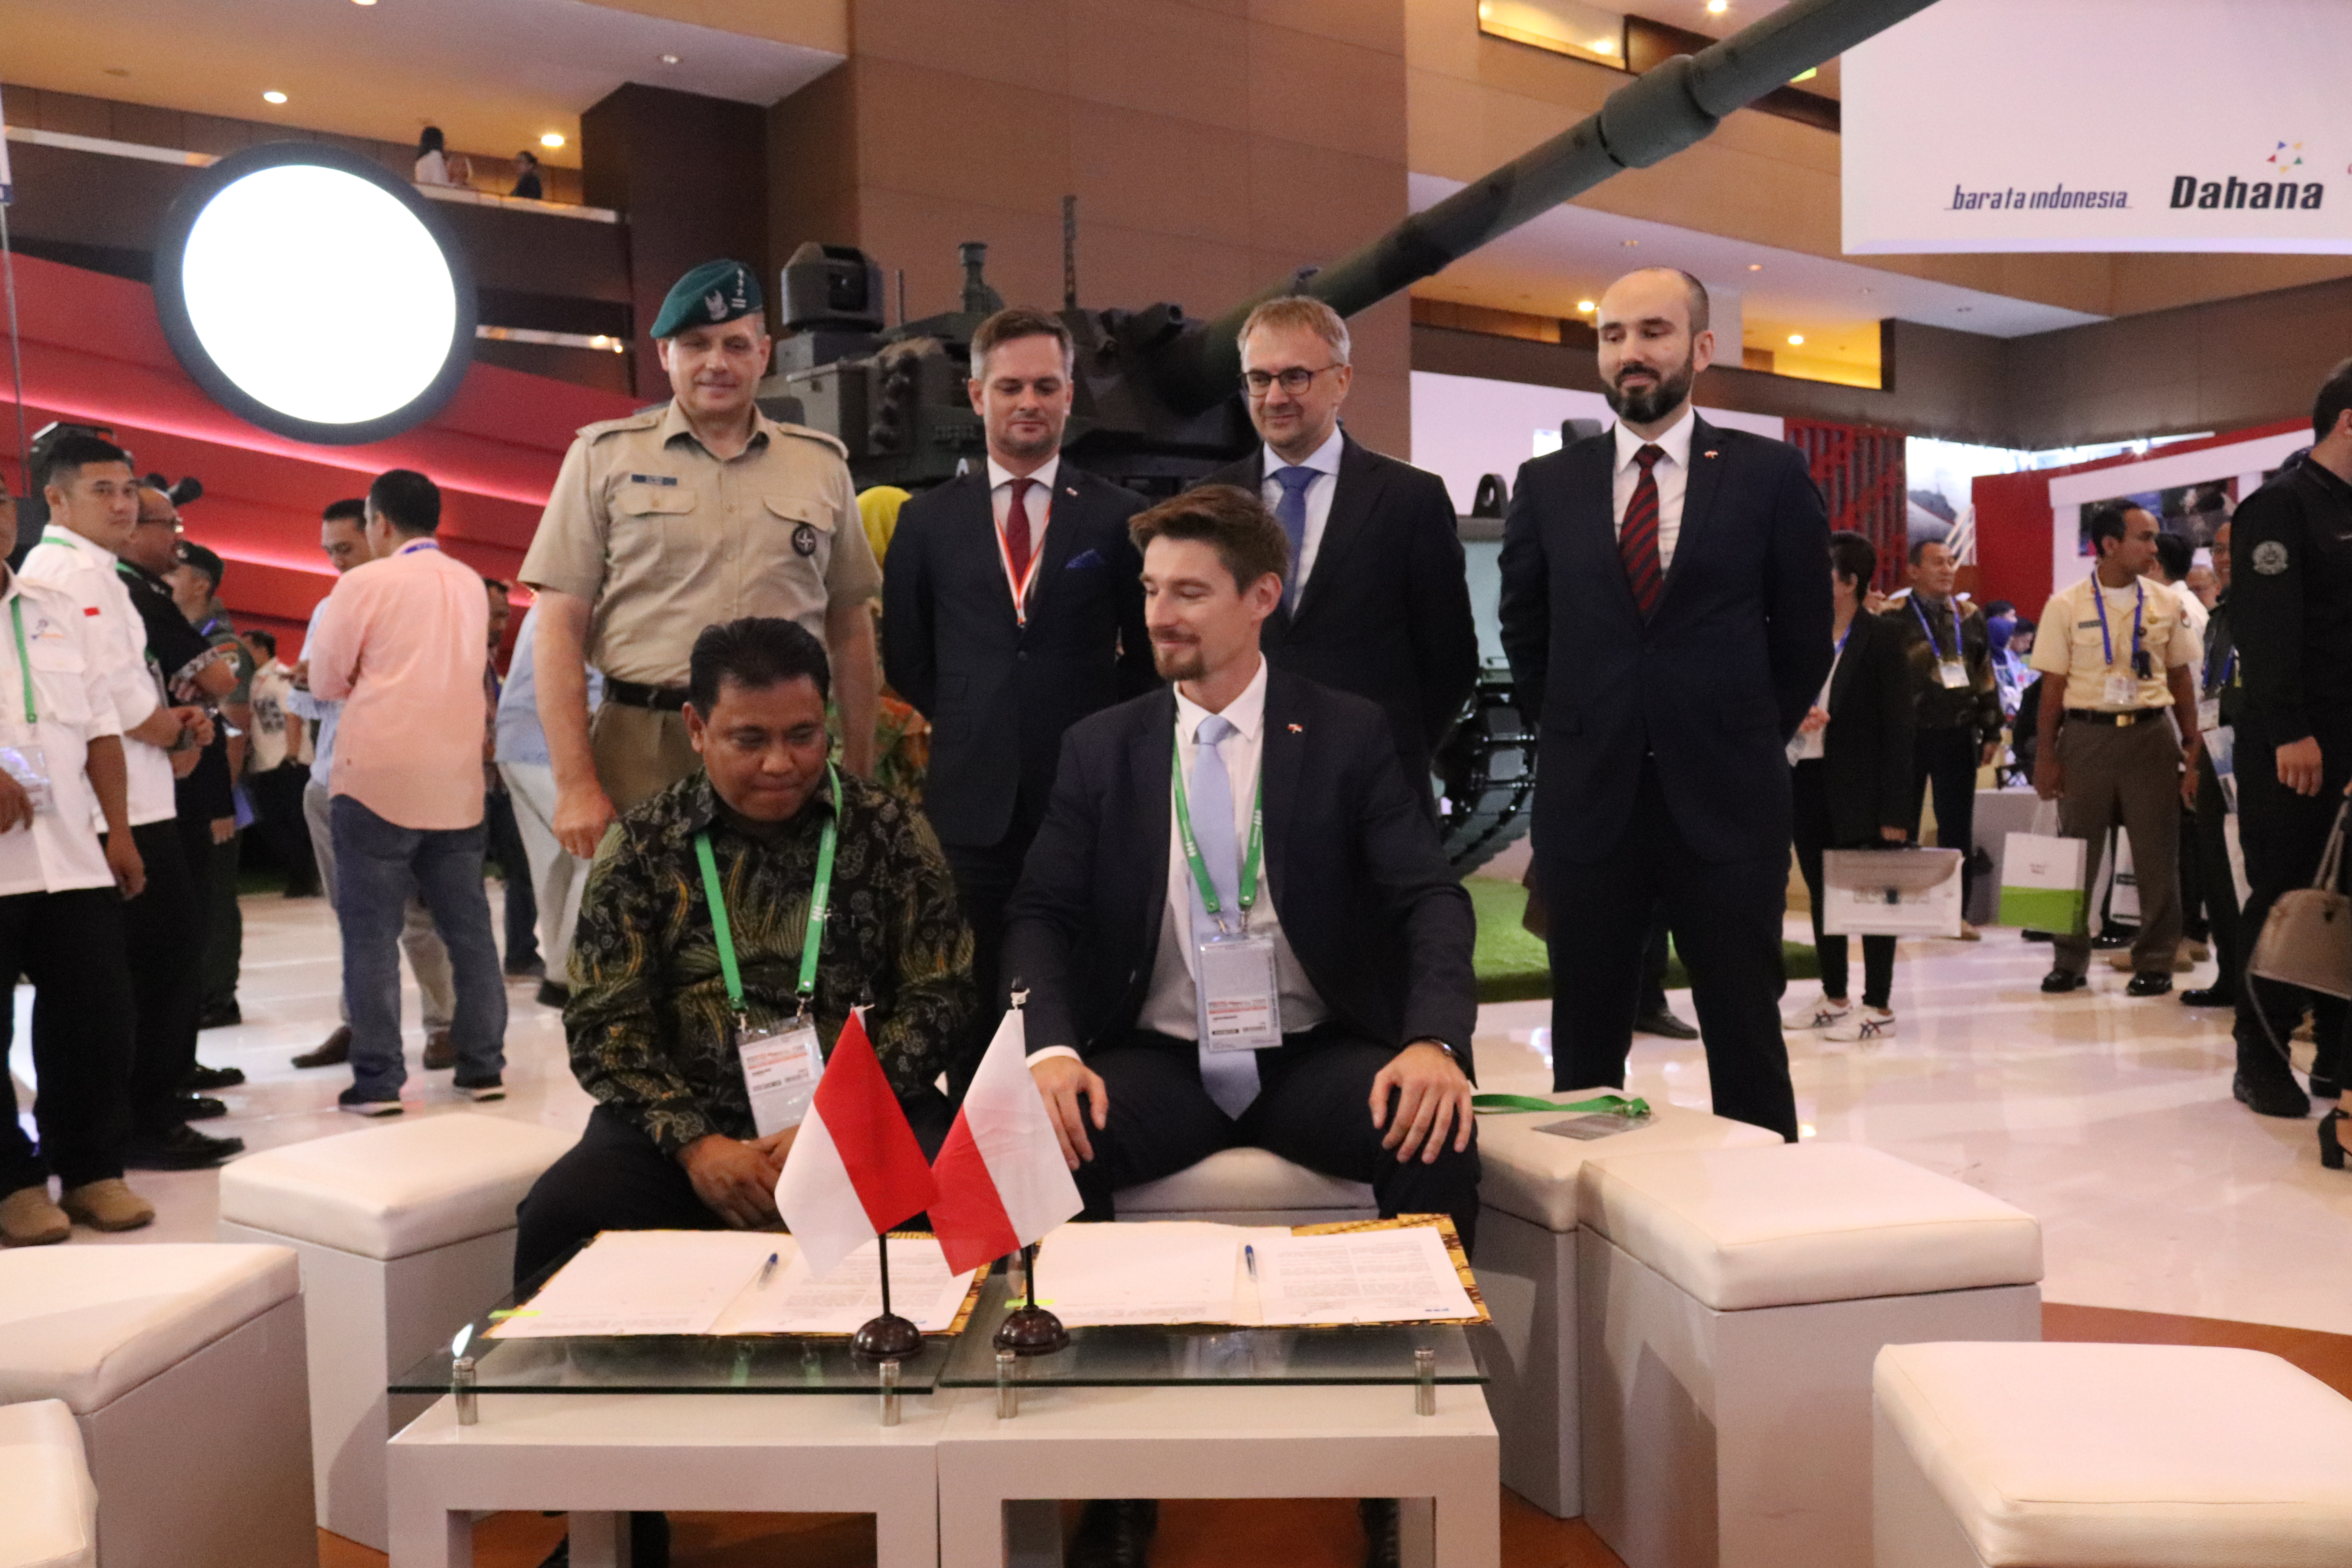 PCO S.A. signed a memorandum of understanding with Pindad (Persero) company